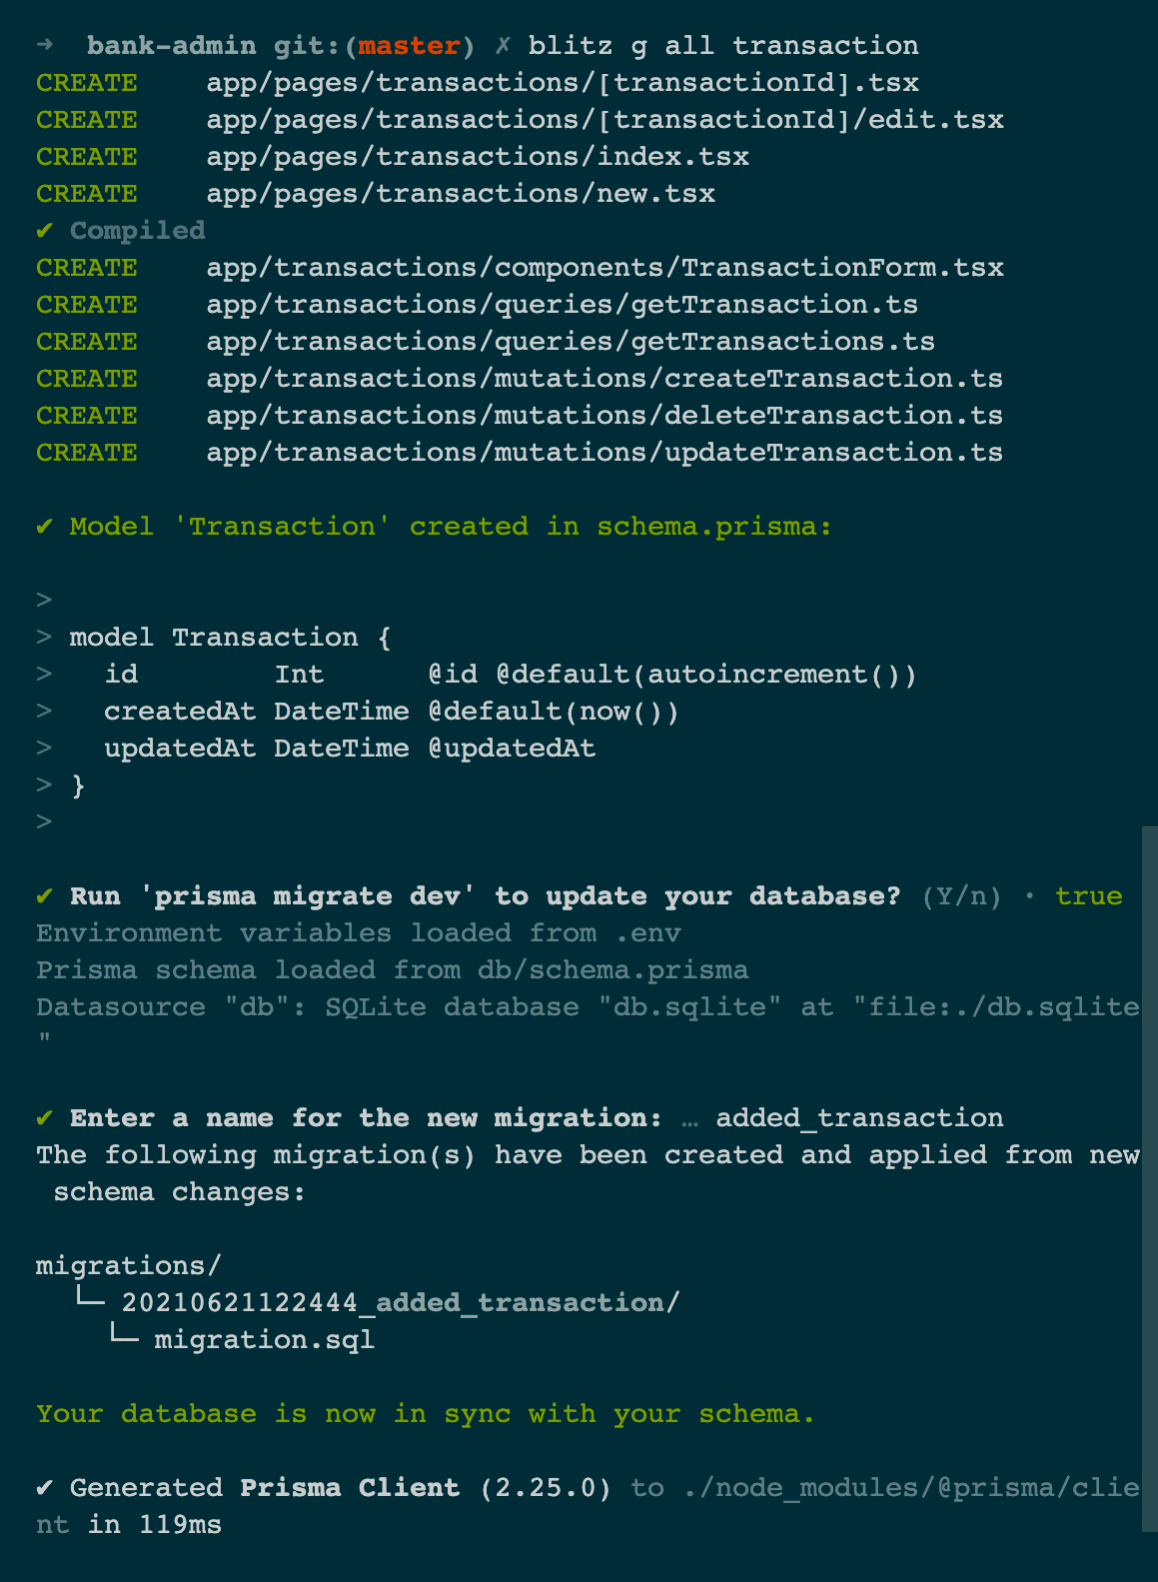 Generate all files for the Transaction model